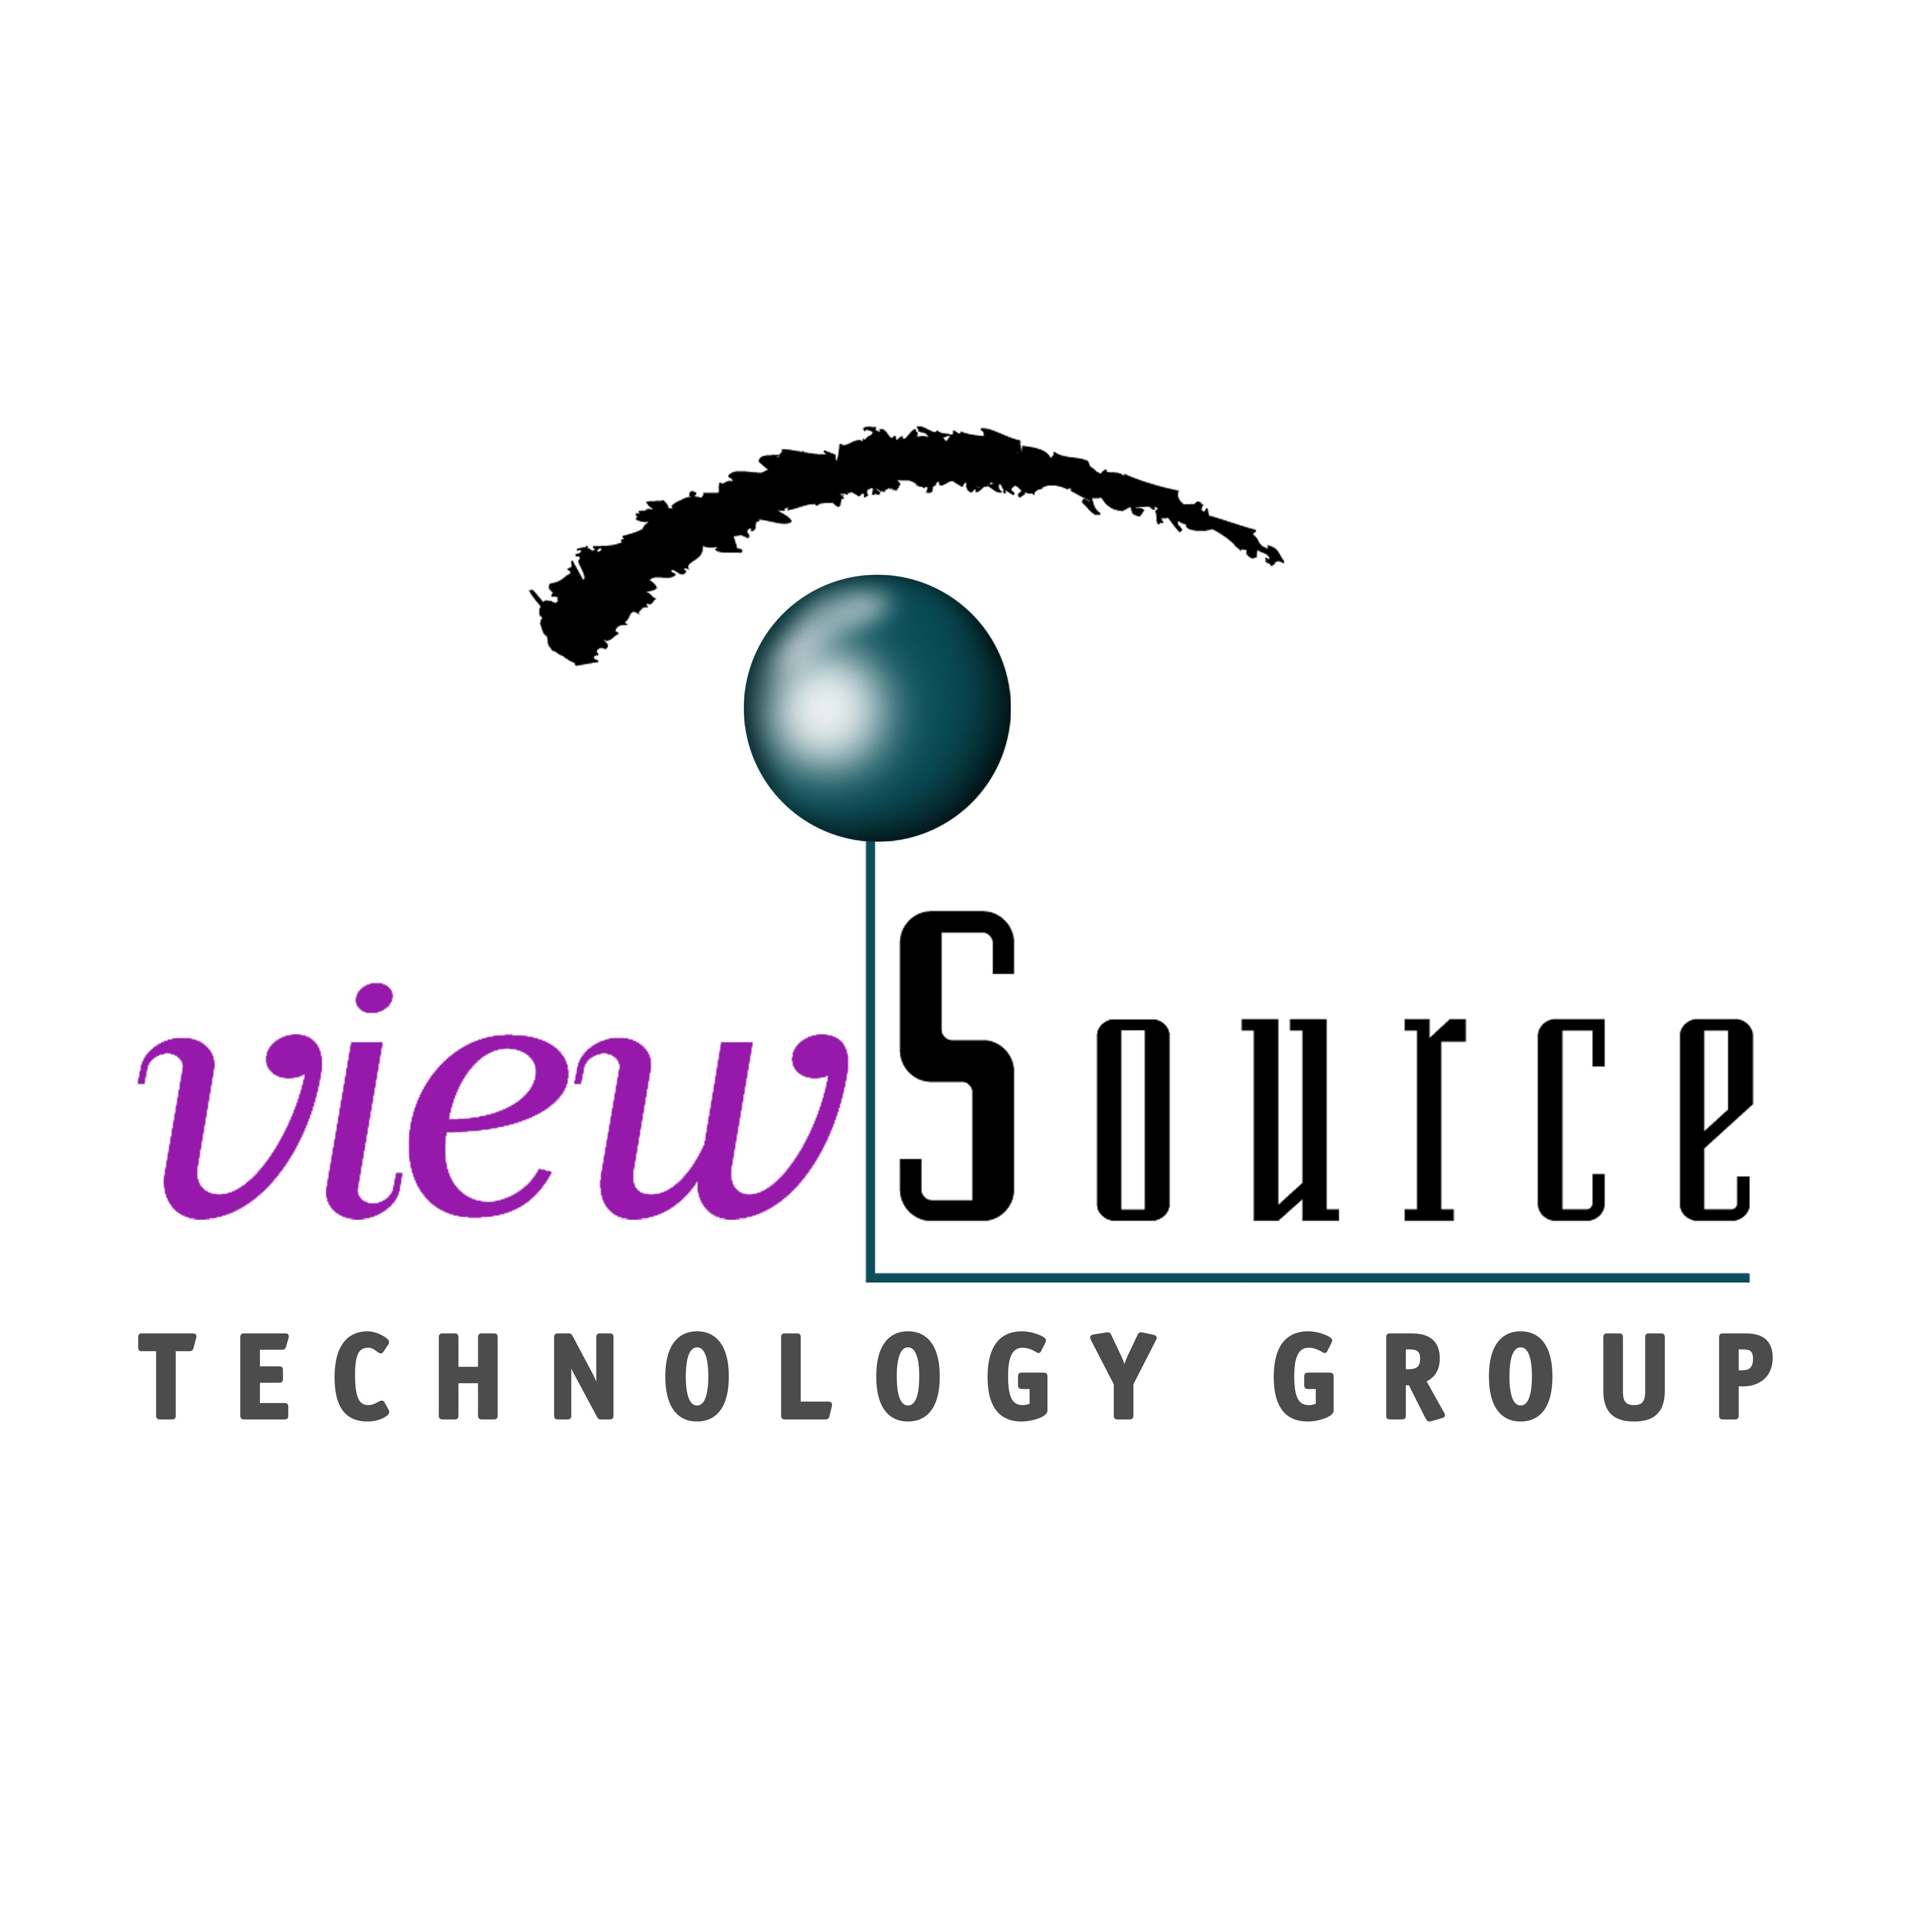 ViewSource Technology Group image 2